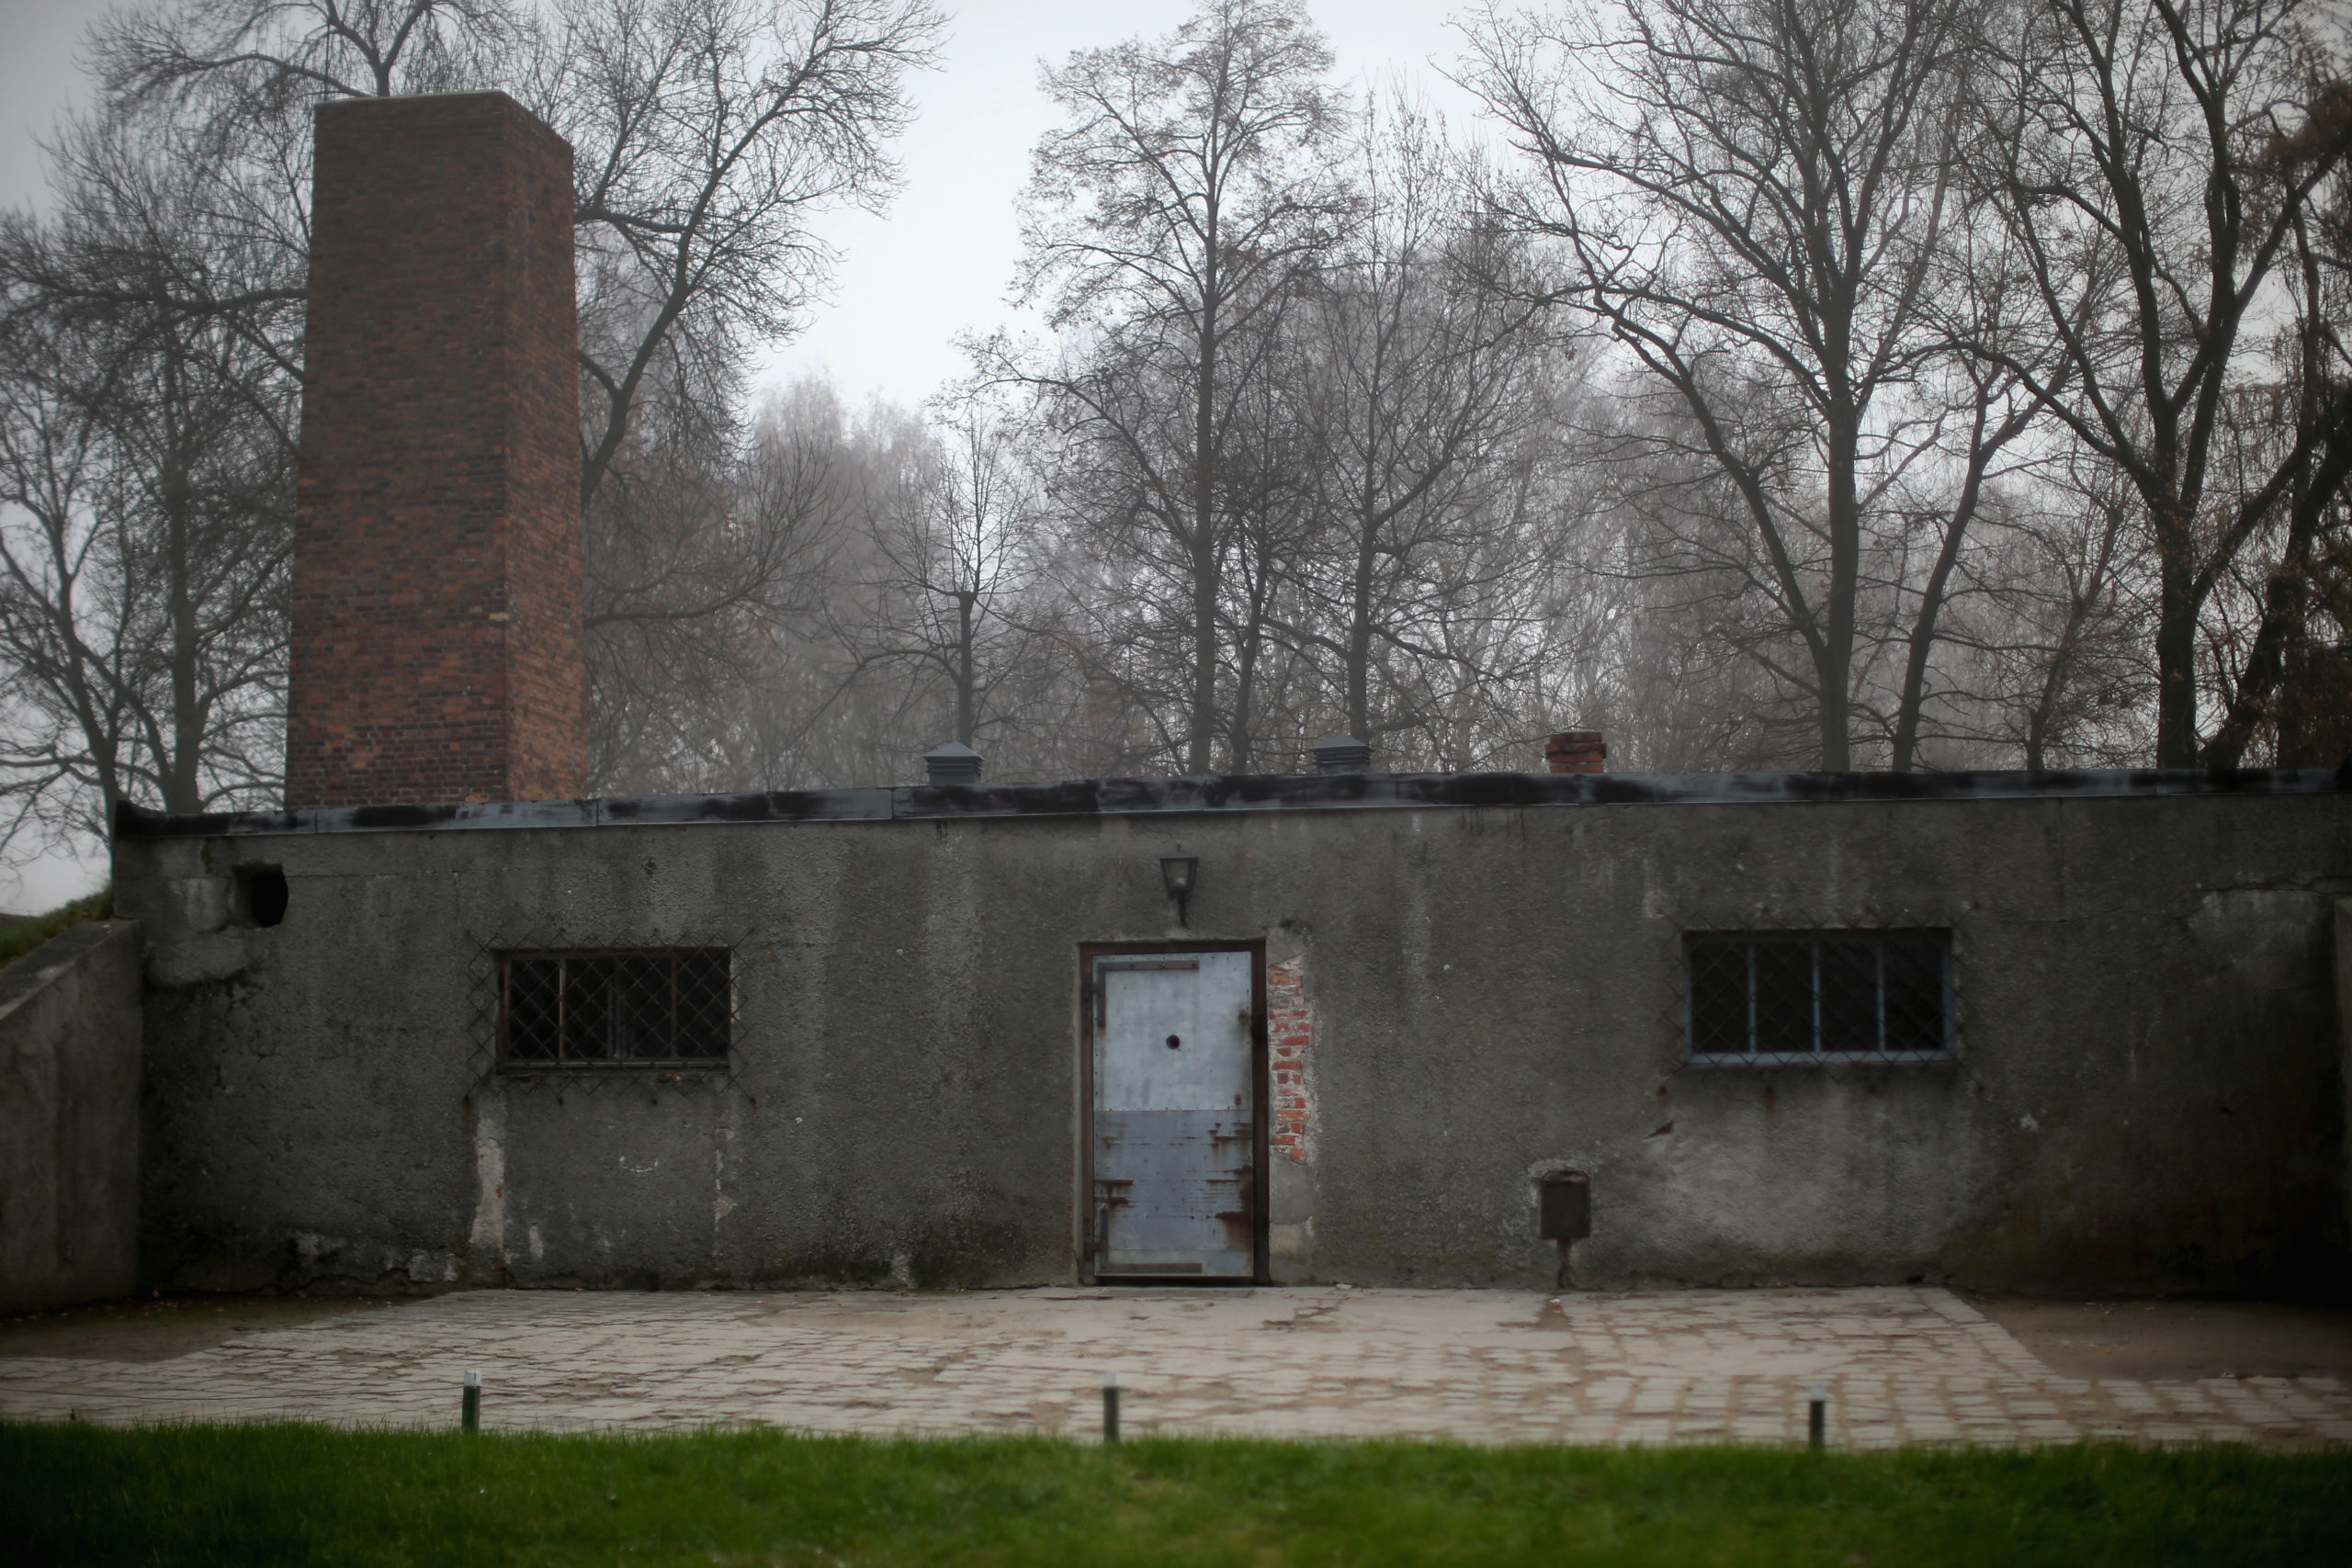 OSWIECIM, POLAND - NOVEMBER 15: The door is closed to the crematorium and gas chamber building at the Auschwitz I extermination camp on November 15, 2014 in Oswiecim, Poland. Ceremonies marking the 70th anniversary of the liberation of the camp by Soviet soldiers are due to take place on January 27, 2015. Auschwitz was a network of concentration camps built and operated in occupied Poland by Nazi Germany during the Second World War. Auschwitz I and nearby Auschwitz II-Birkenau was the extermination camp where an estimated 1.1 million people, mostly Jews from across Europe, were killed in gas chambers or from systematic starvation, forced labour, disease and medical experiments. (Photo by Christopher Furlong/Getty Images)